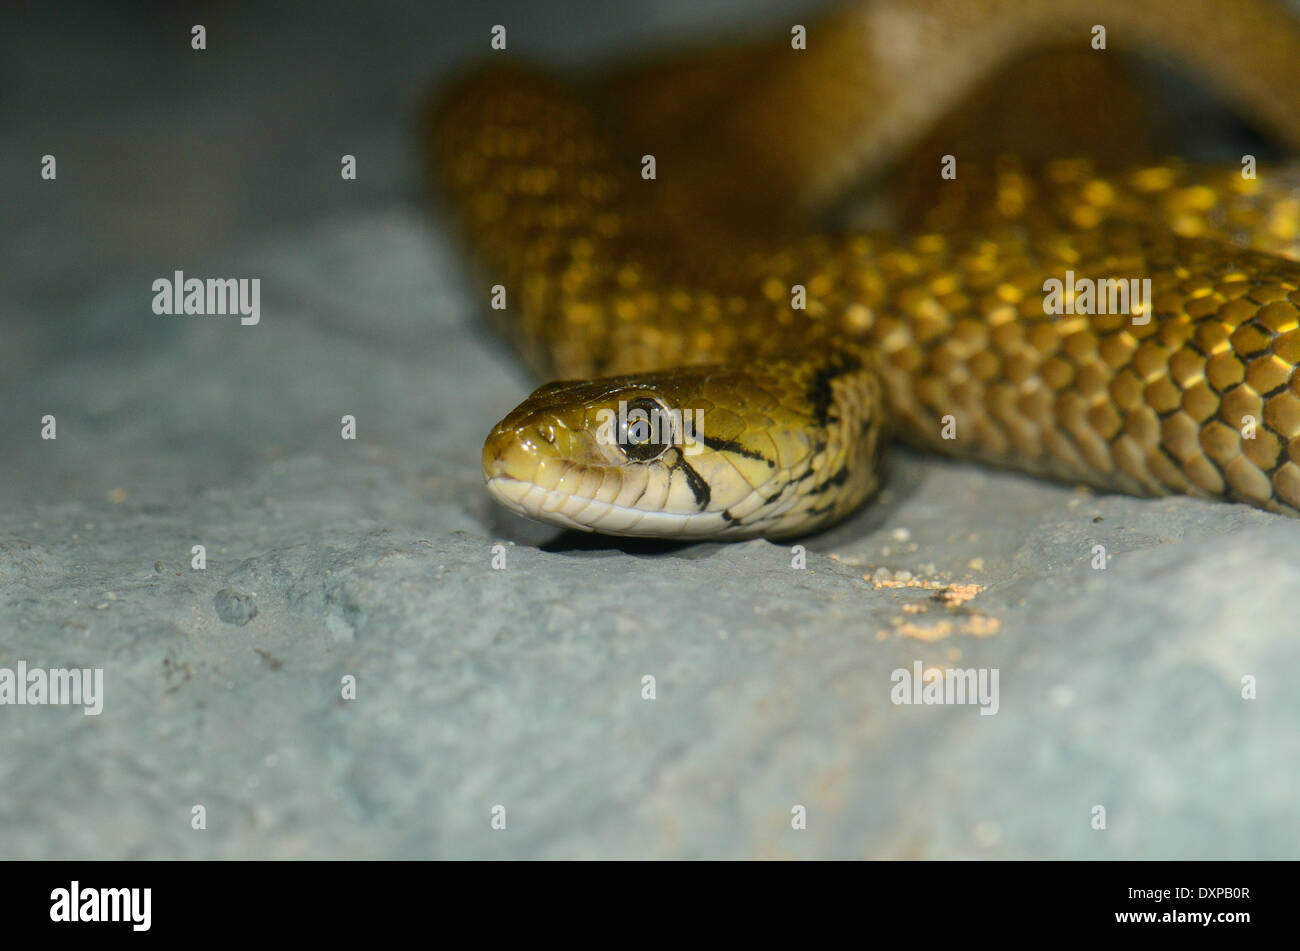 beautiful Chequered Keelback (Xenochrophis piscator) in terrarium - Stock Image